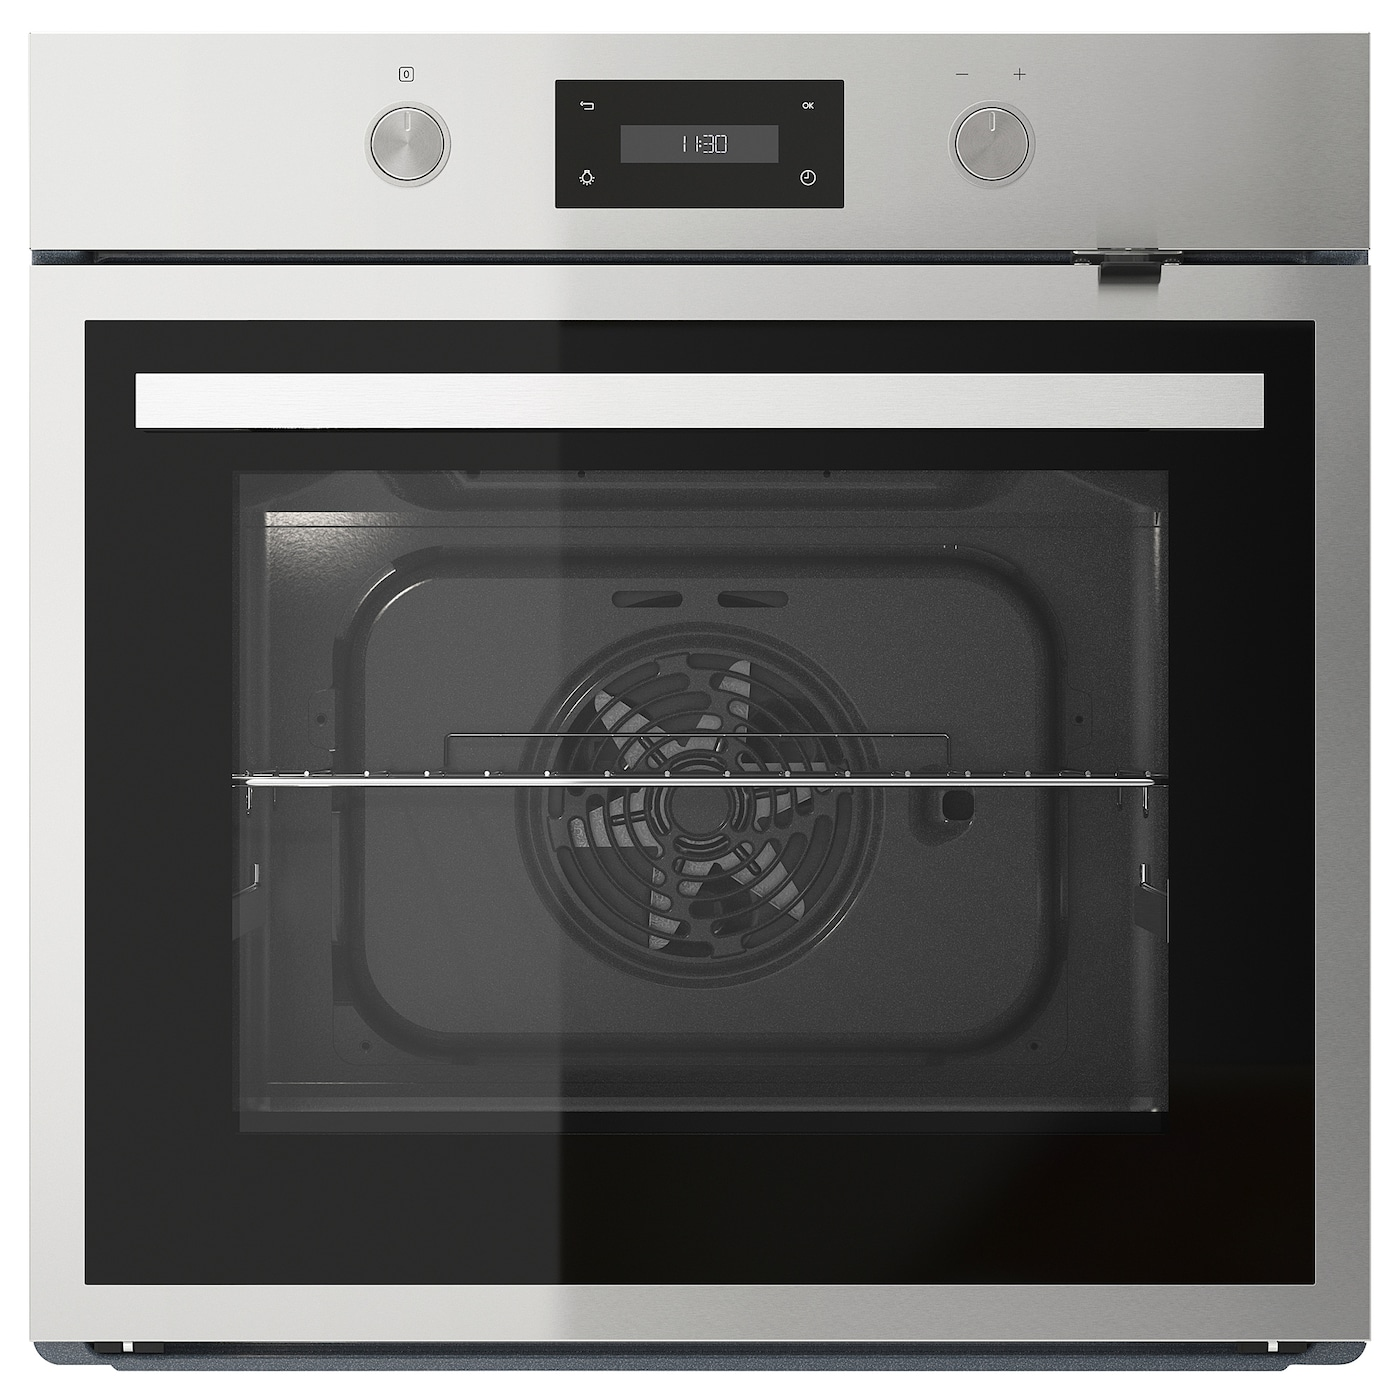 IKEA ANRÄTTA forced air oven 5 year guarantee. Read about the terms in the guarantee brochure.